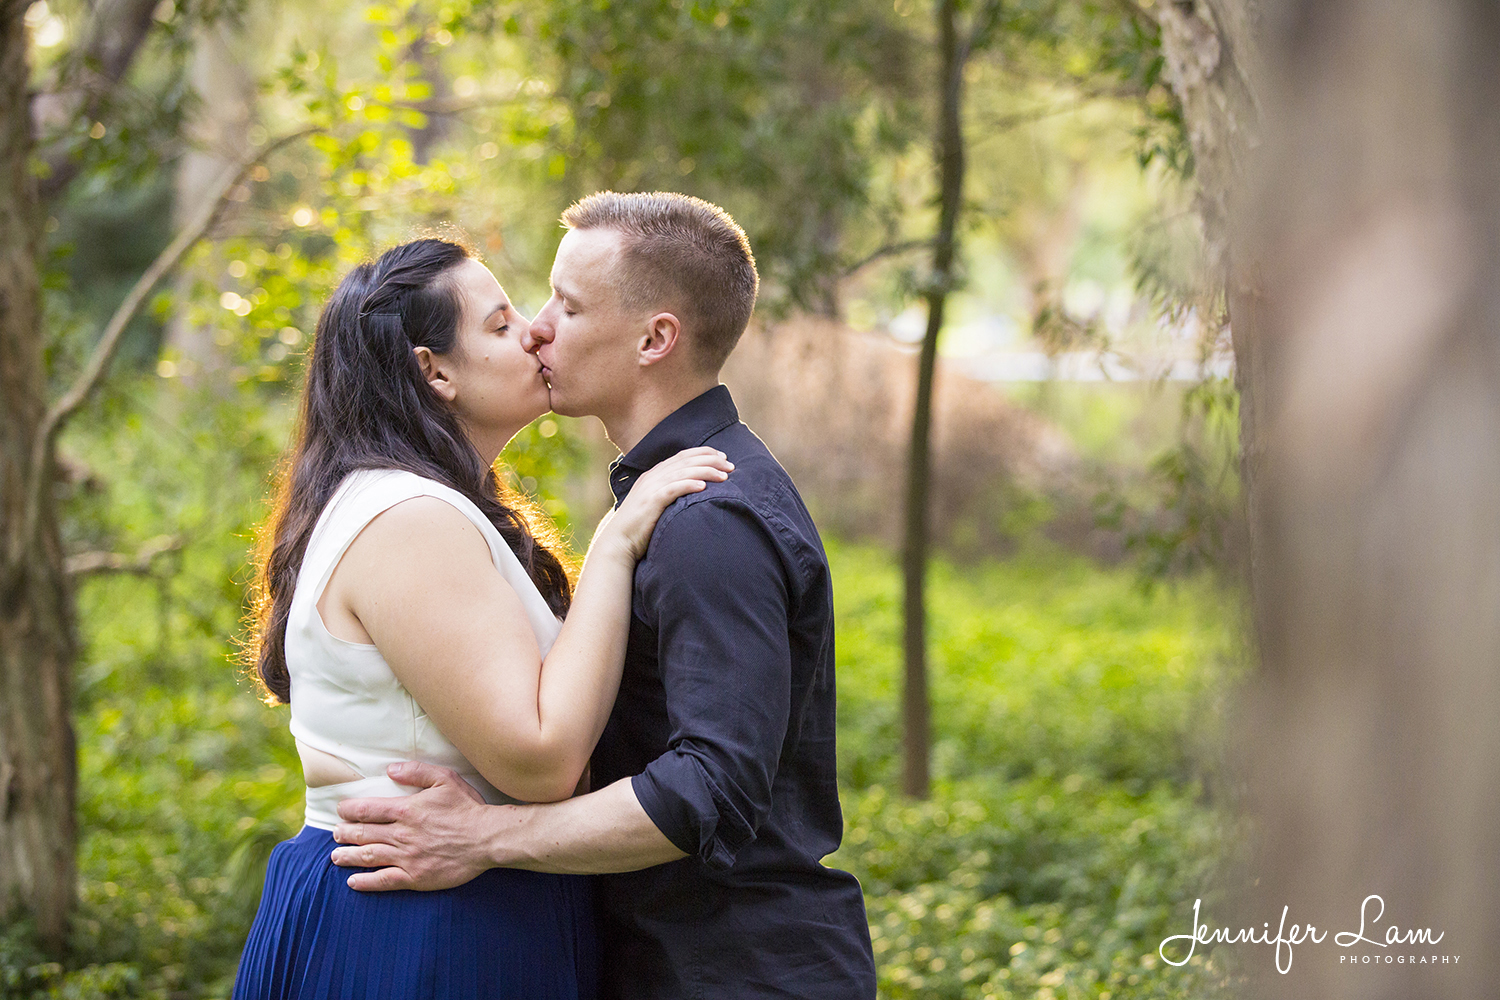 Engagement Session - Sydney Wedding Photographer - Jennifer Lam Photography (10).jpg